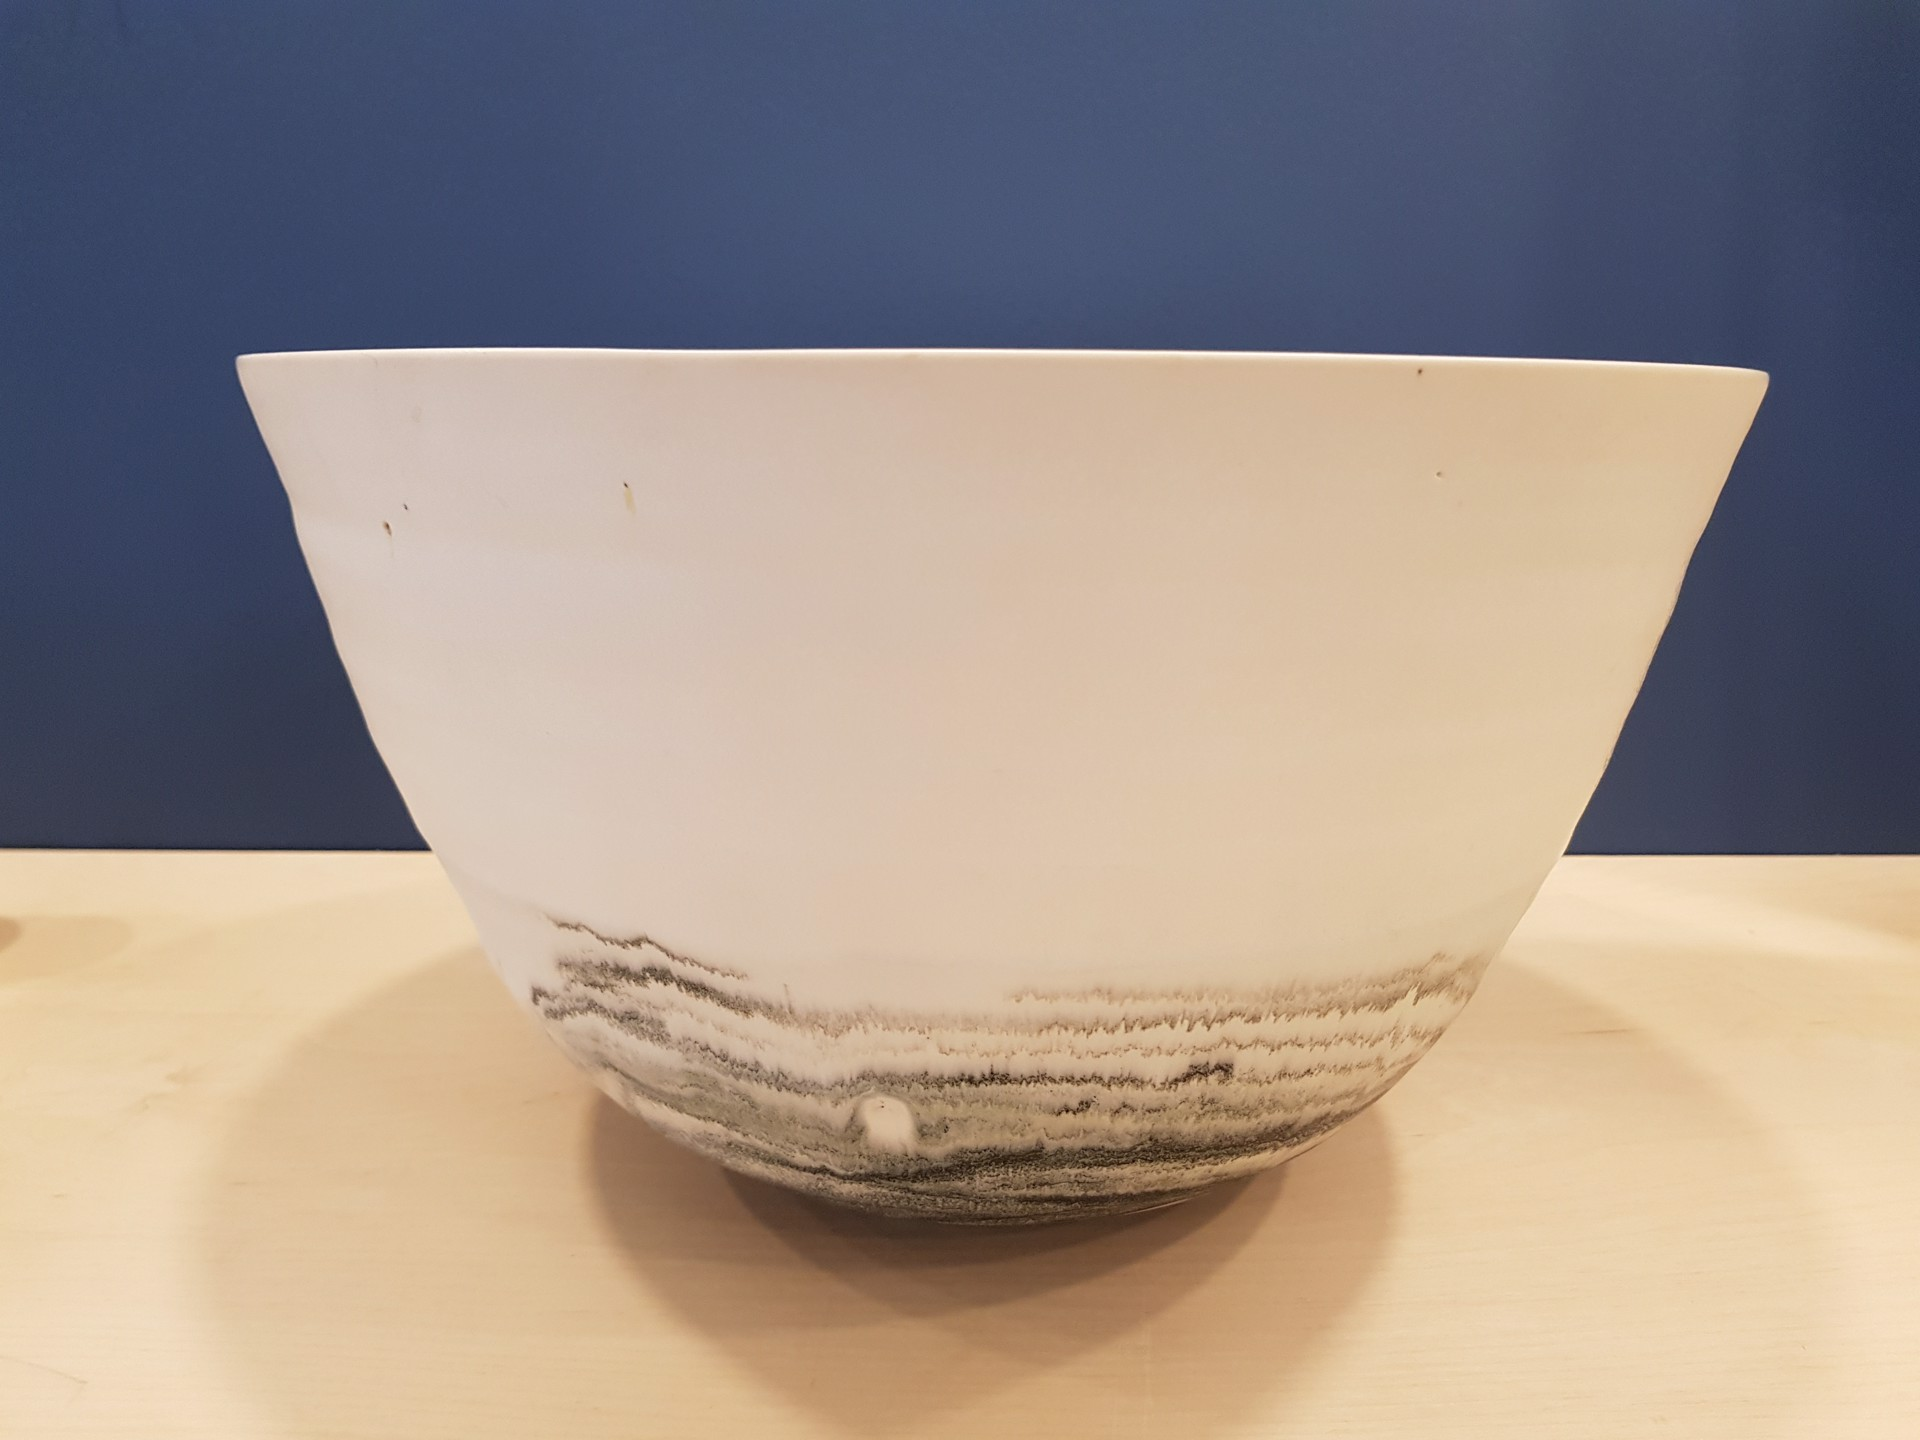 Large Charcoal Bottom Bowl by Kyra Cane